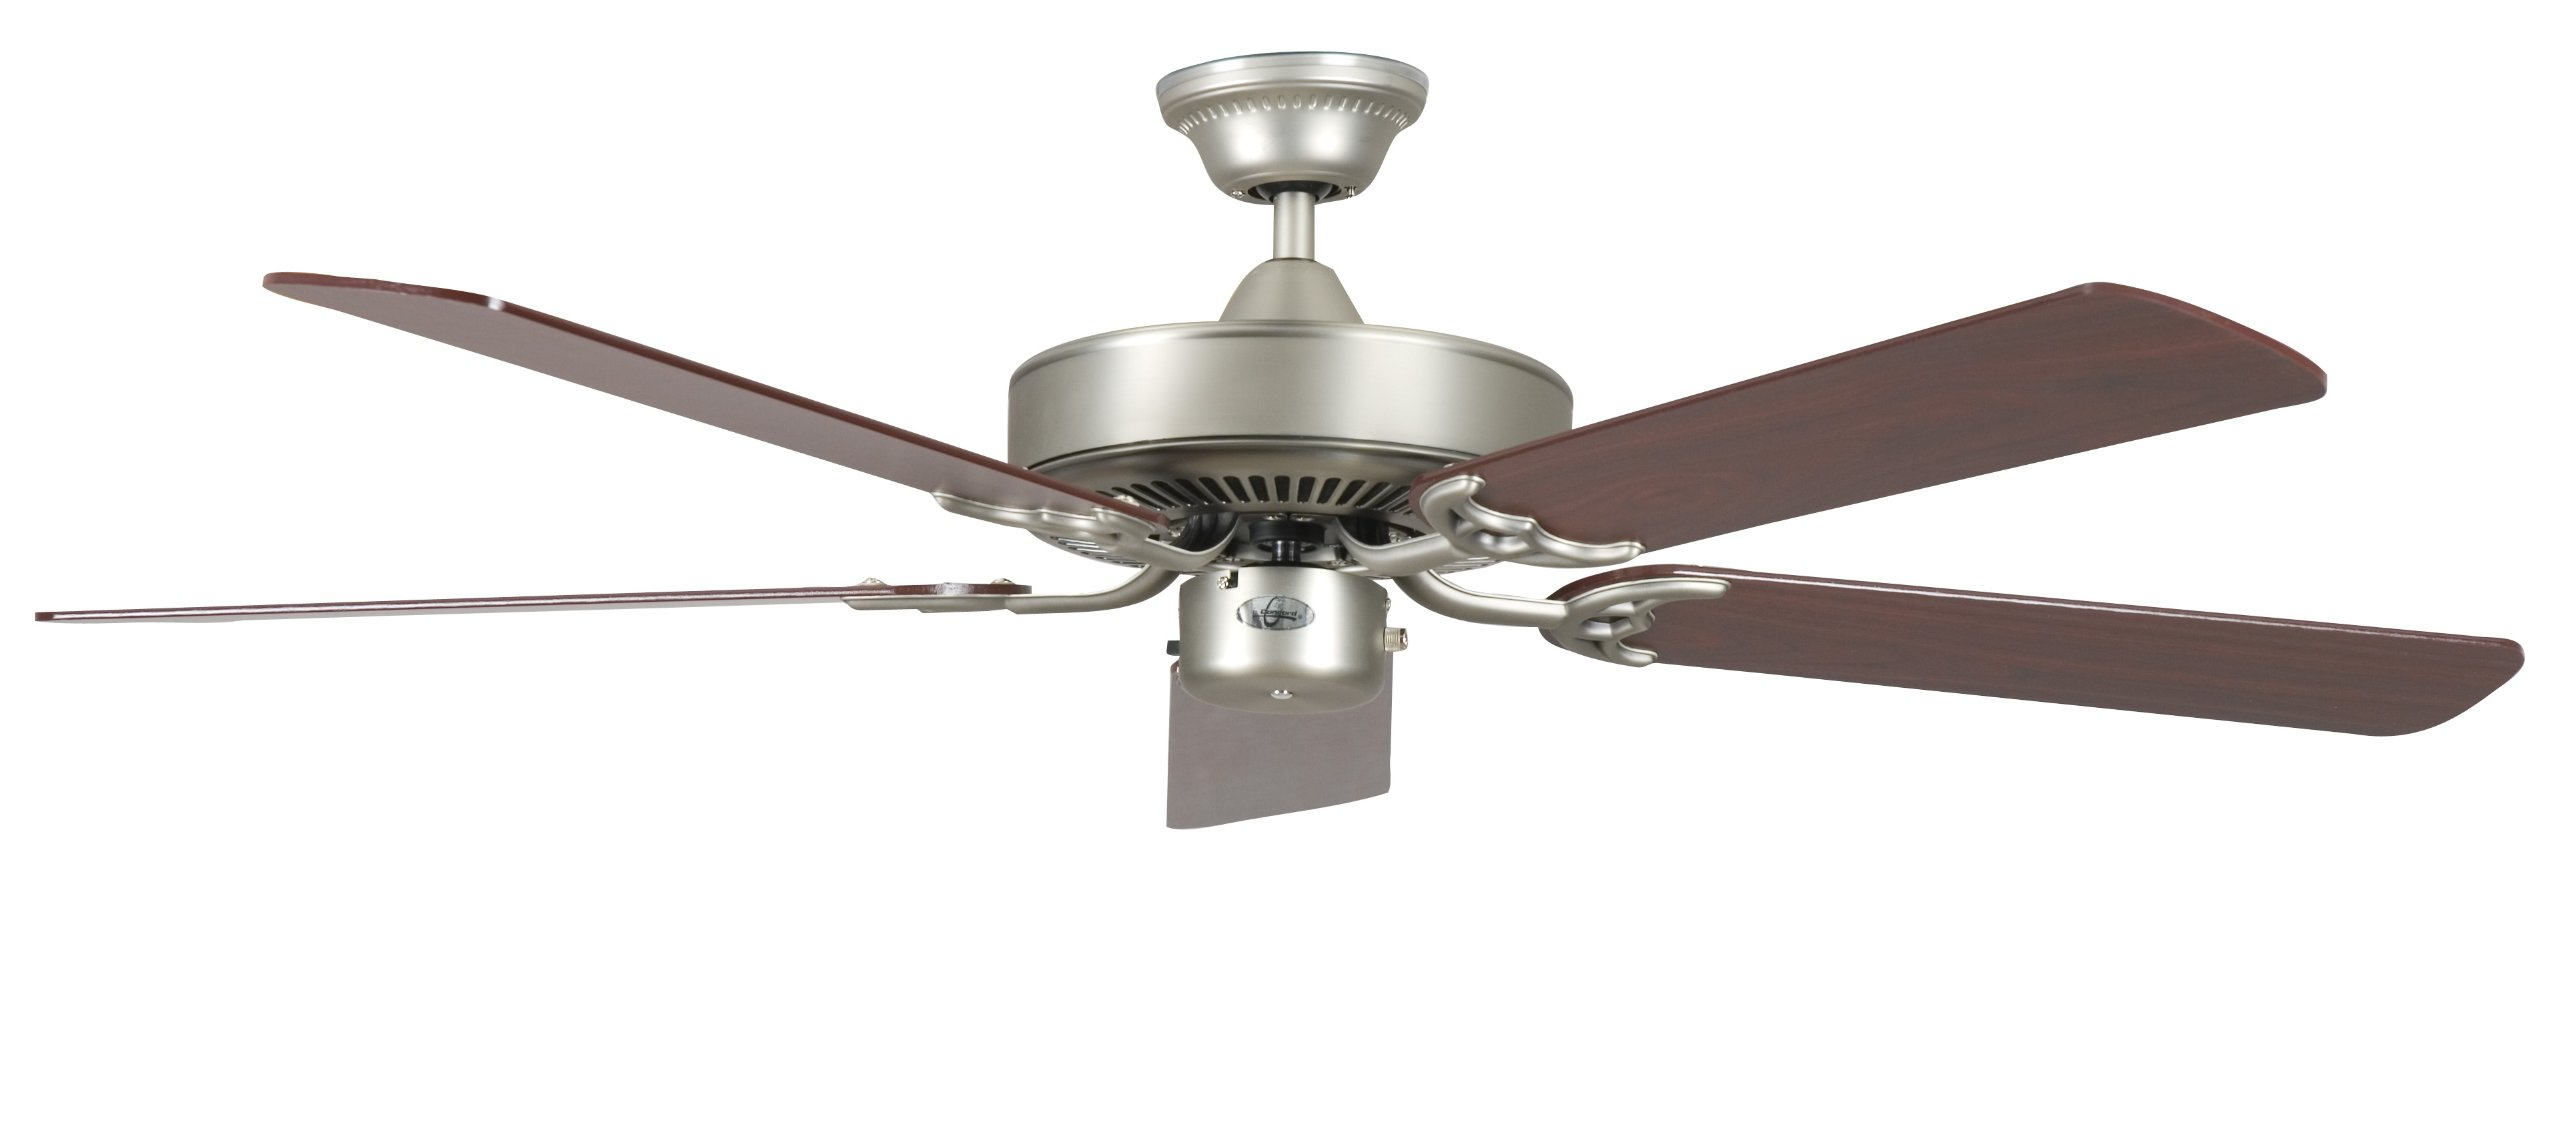 Concord Fans 52CH5SN 52 Inch California Home Collection Ceiling Fan - Satin Nickel